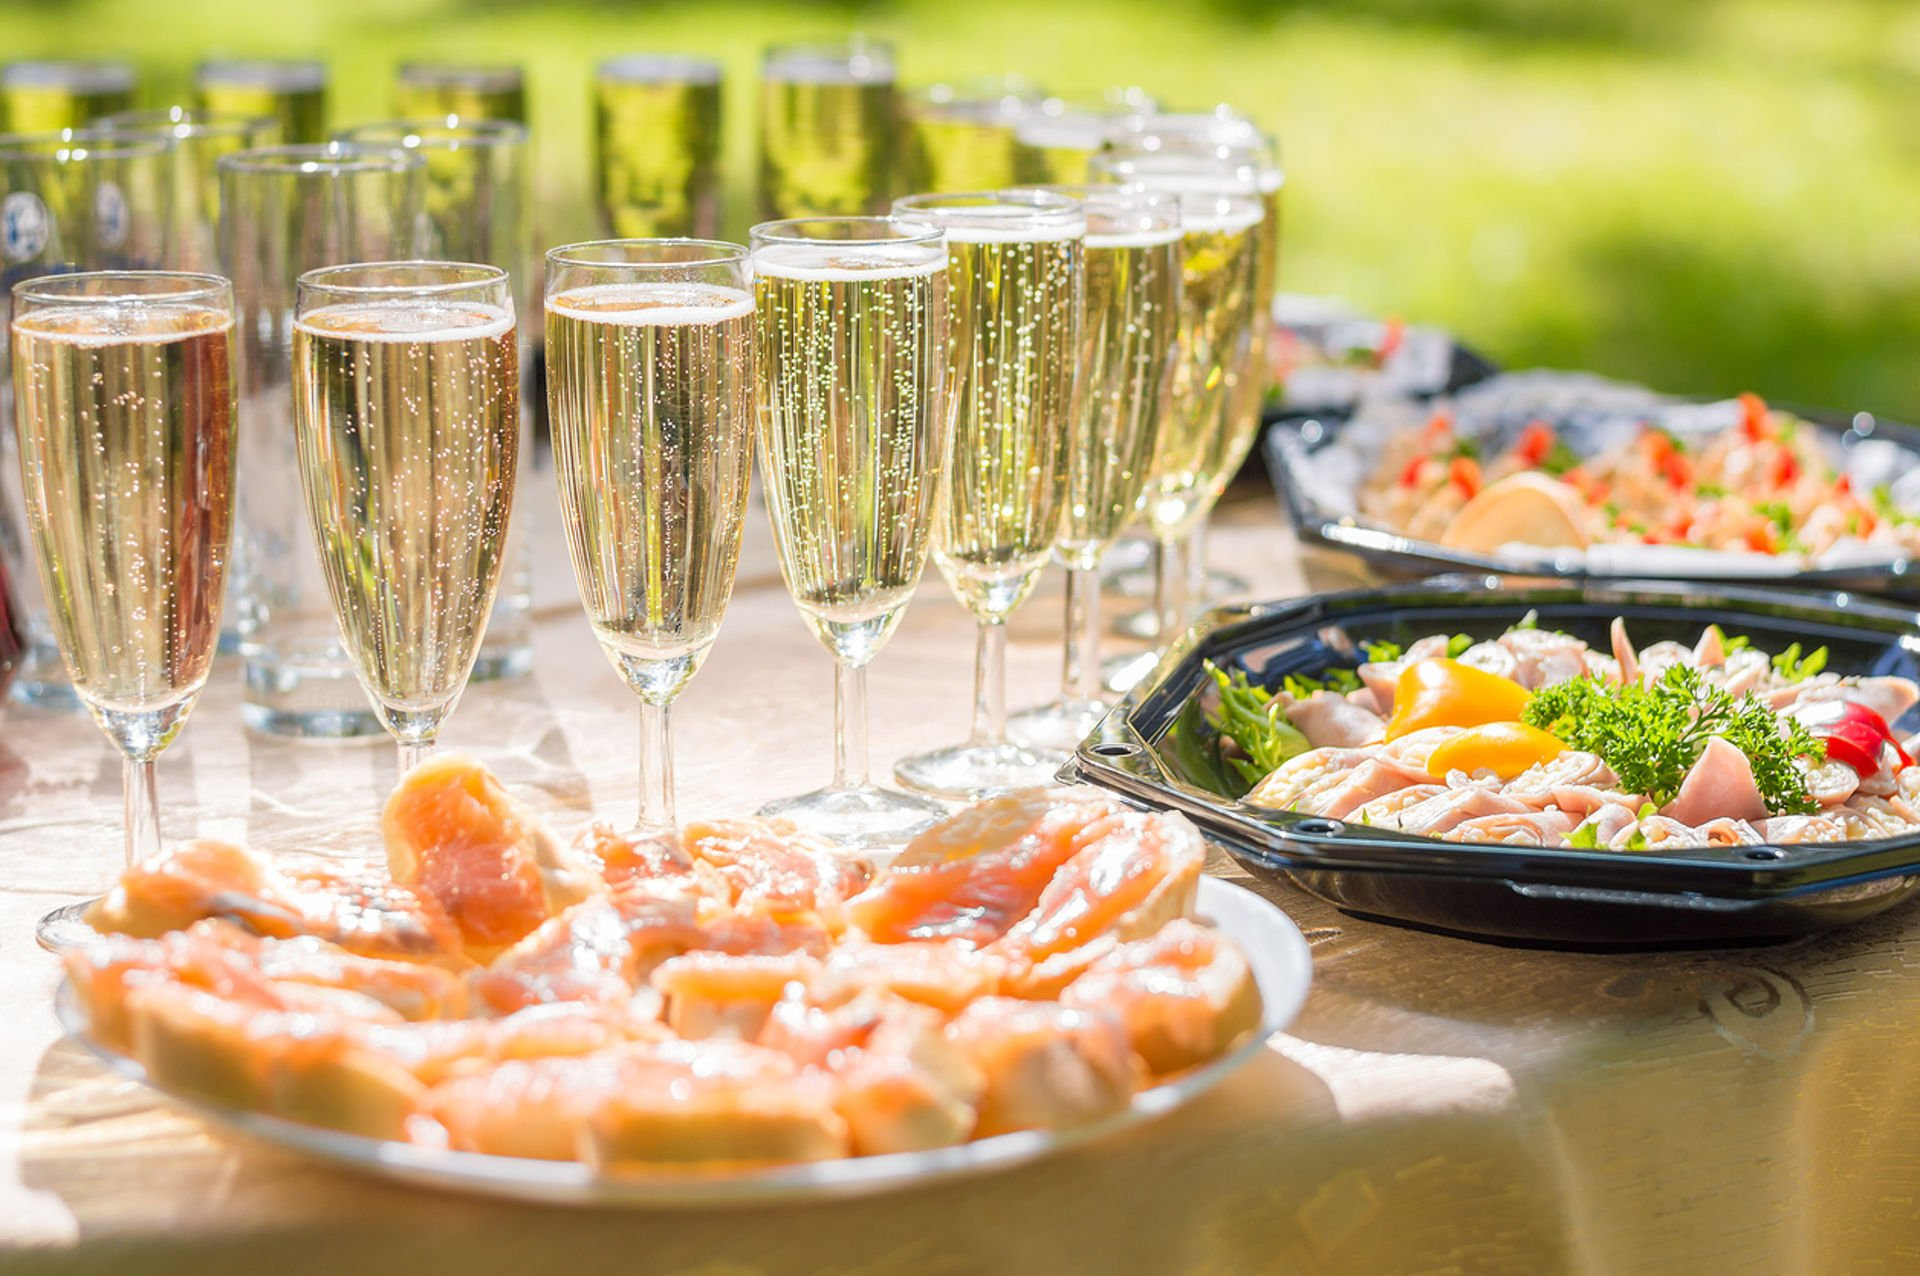 food champagne party catering buffet menu canape buffets cold sandwiches